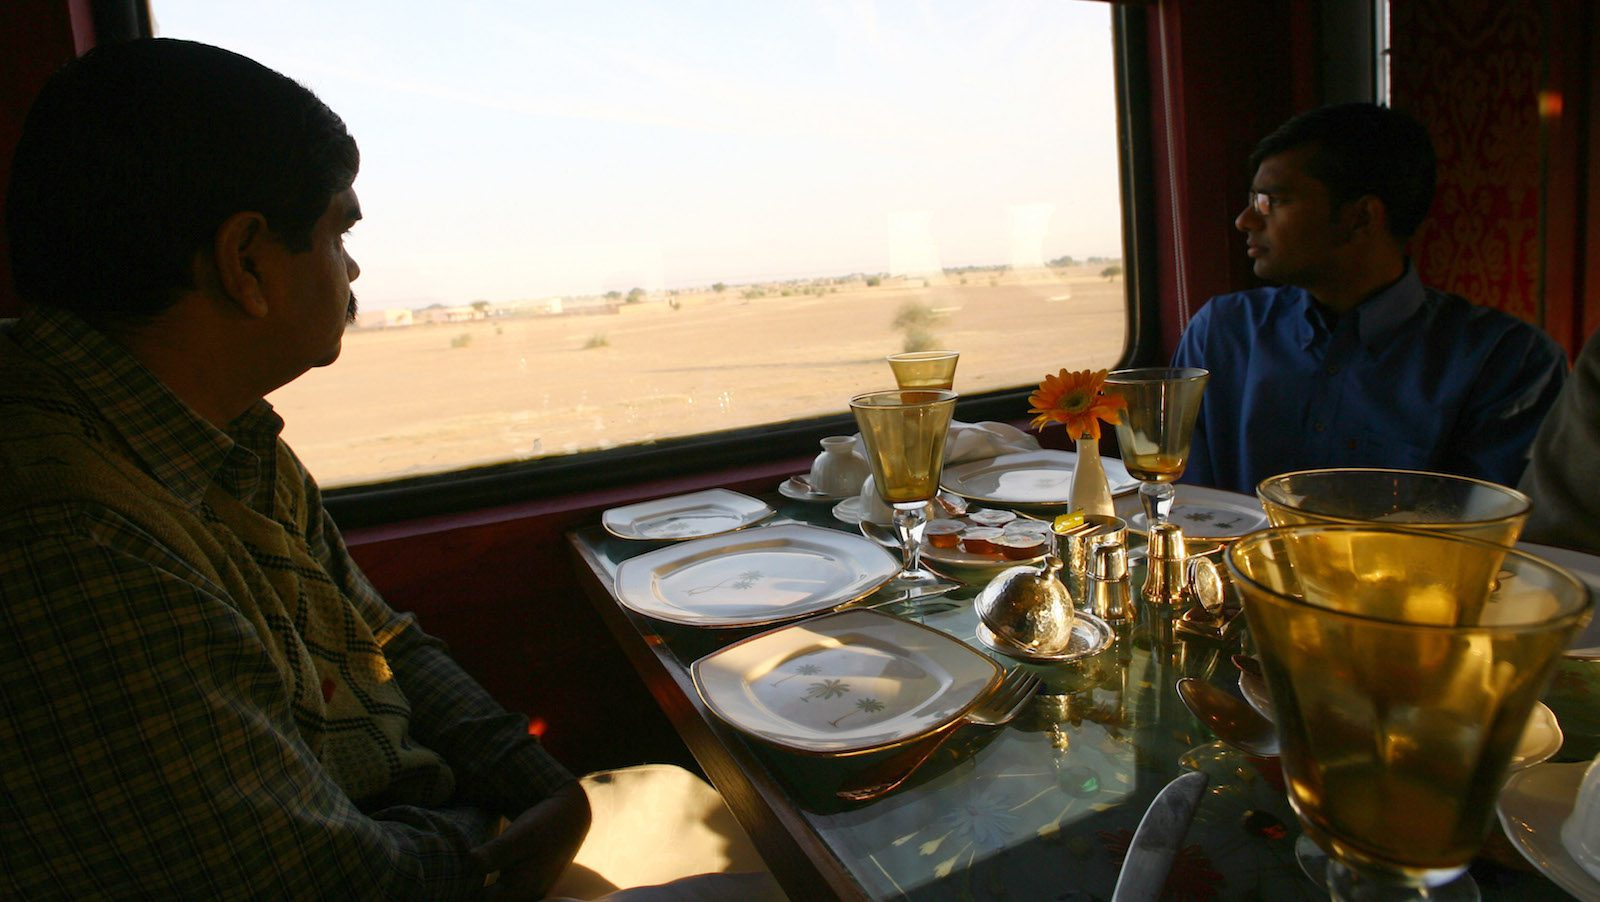 Guests sit inside the Swarna Mahal of the new luxury train on the outskirts of Jaisalmer